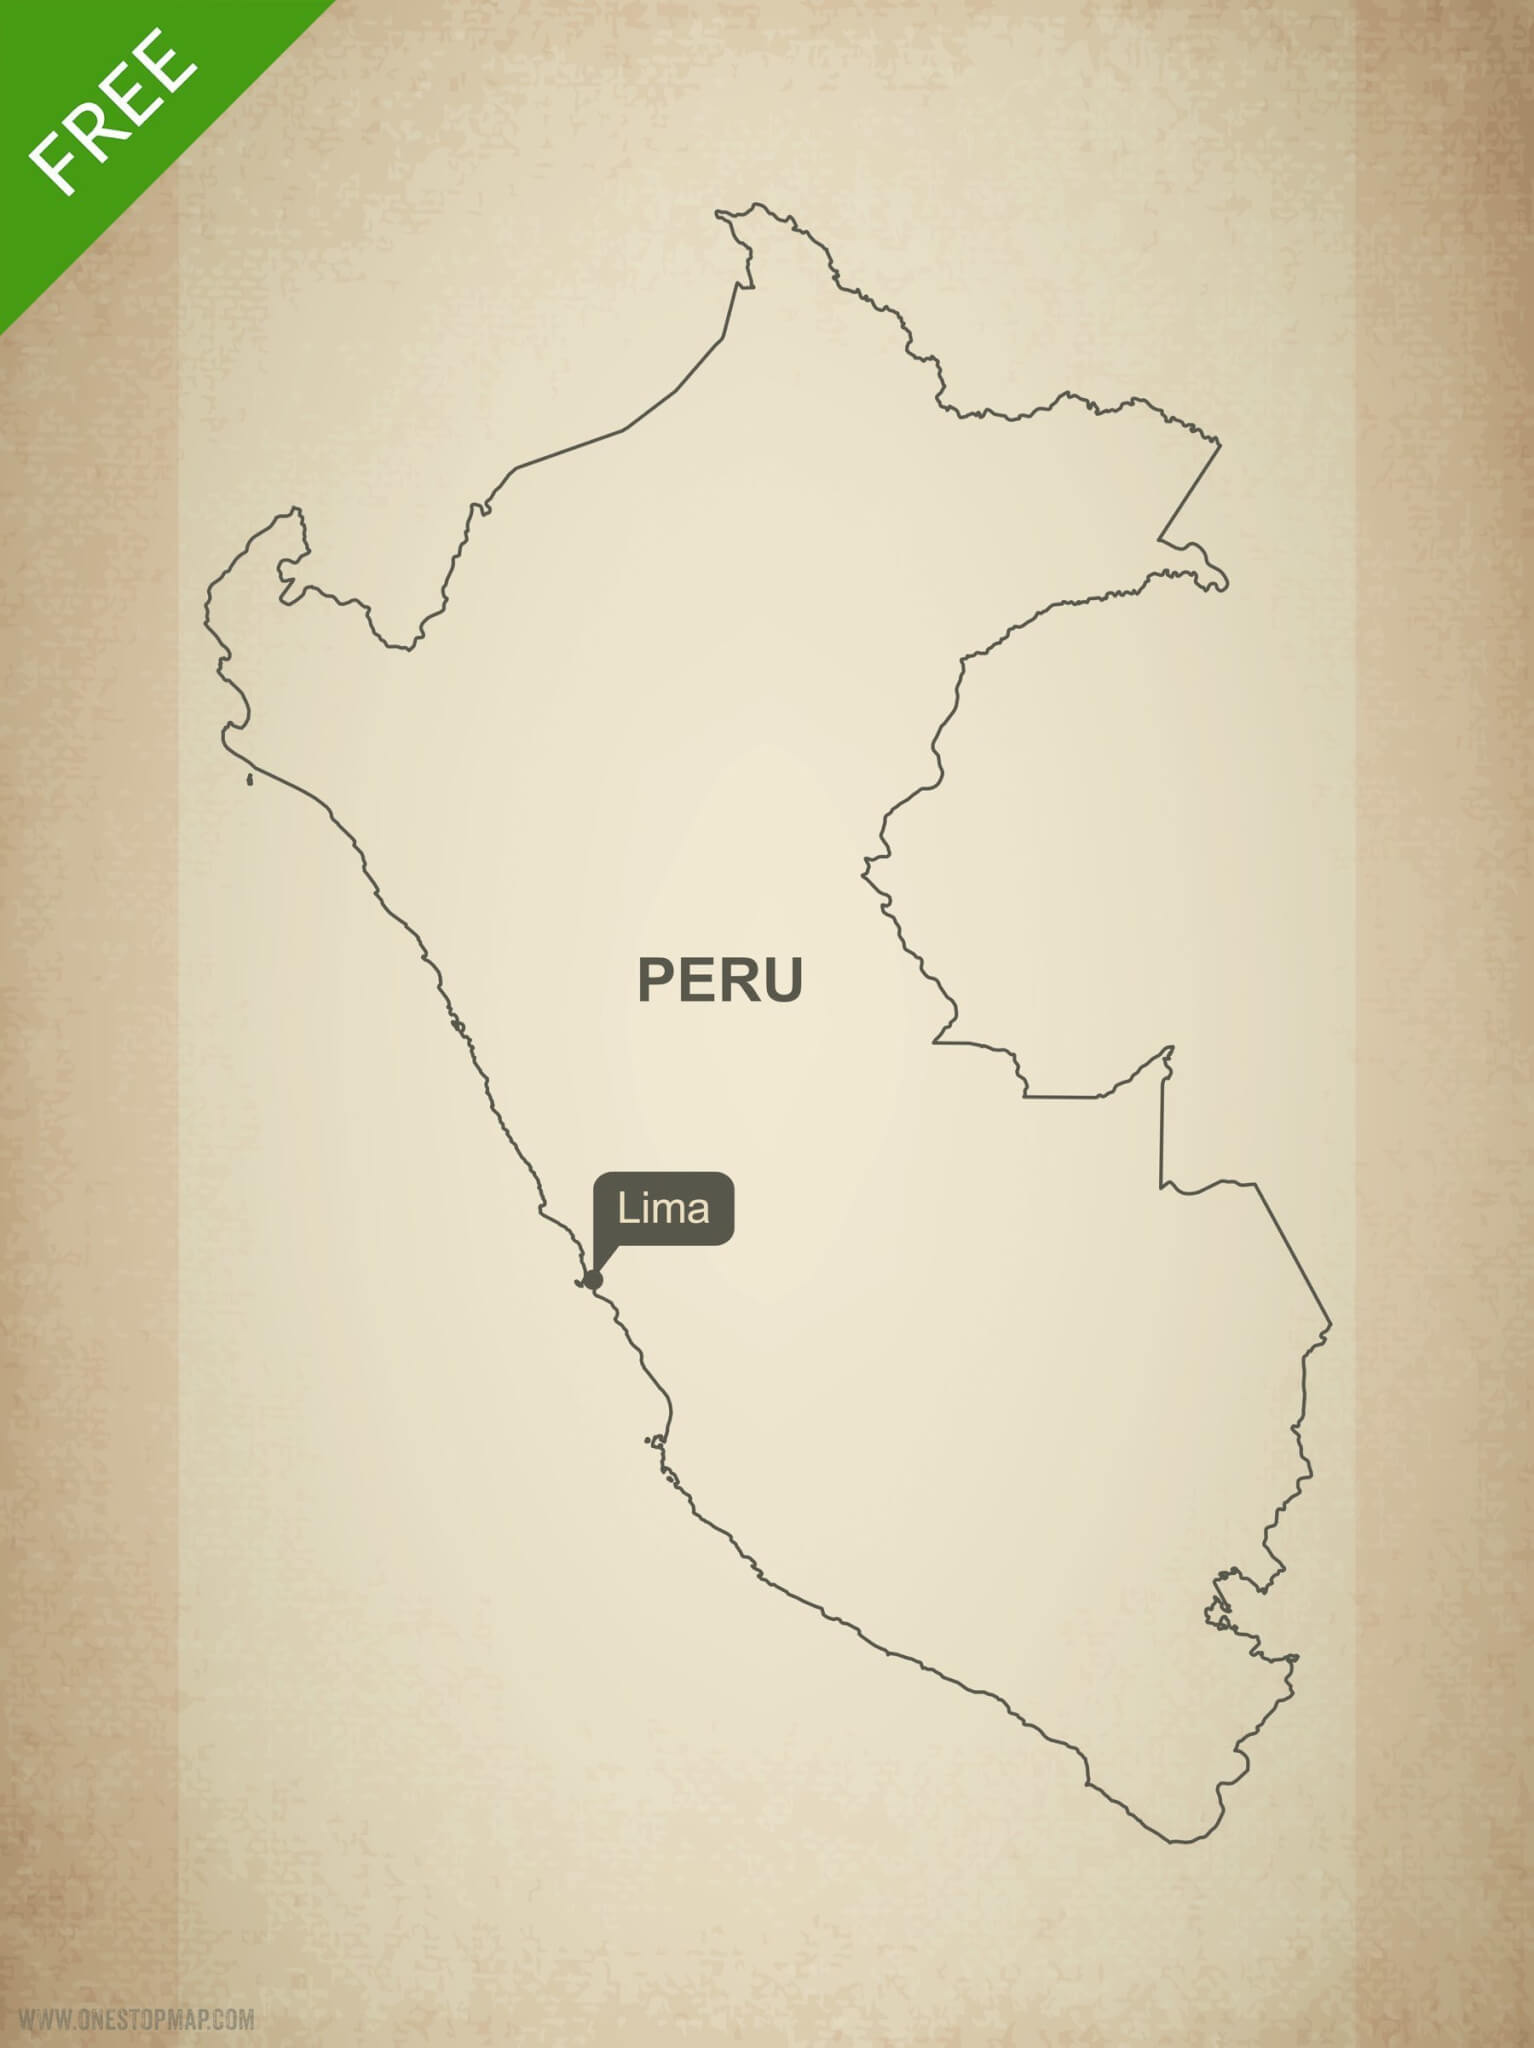 Free vector map of Peru outline